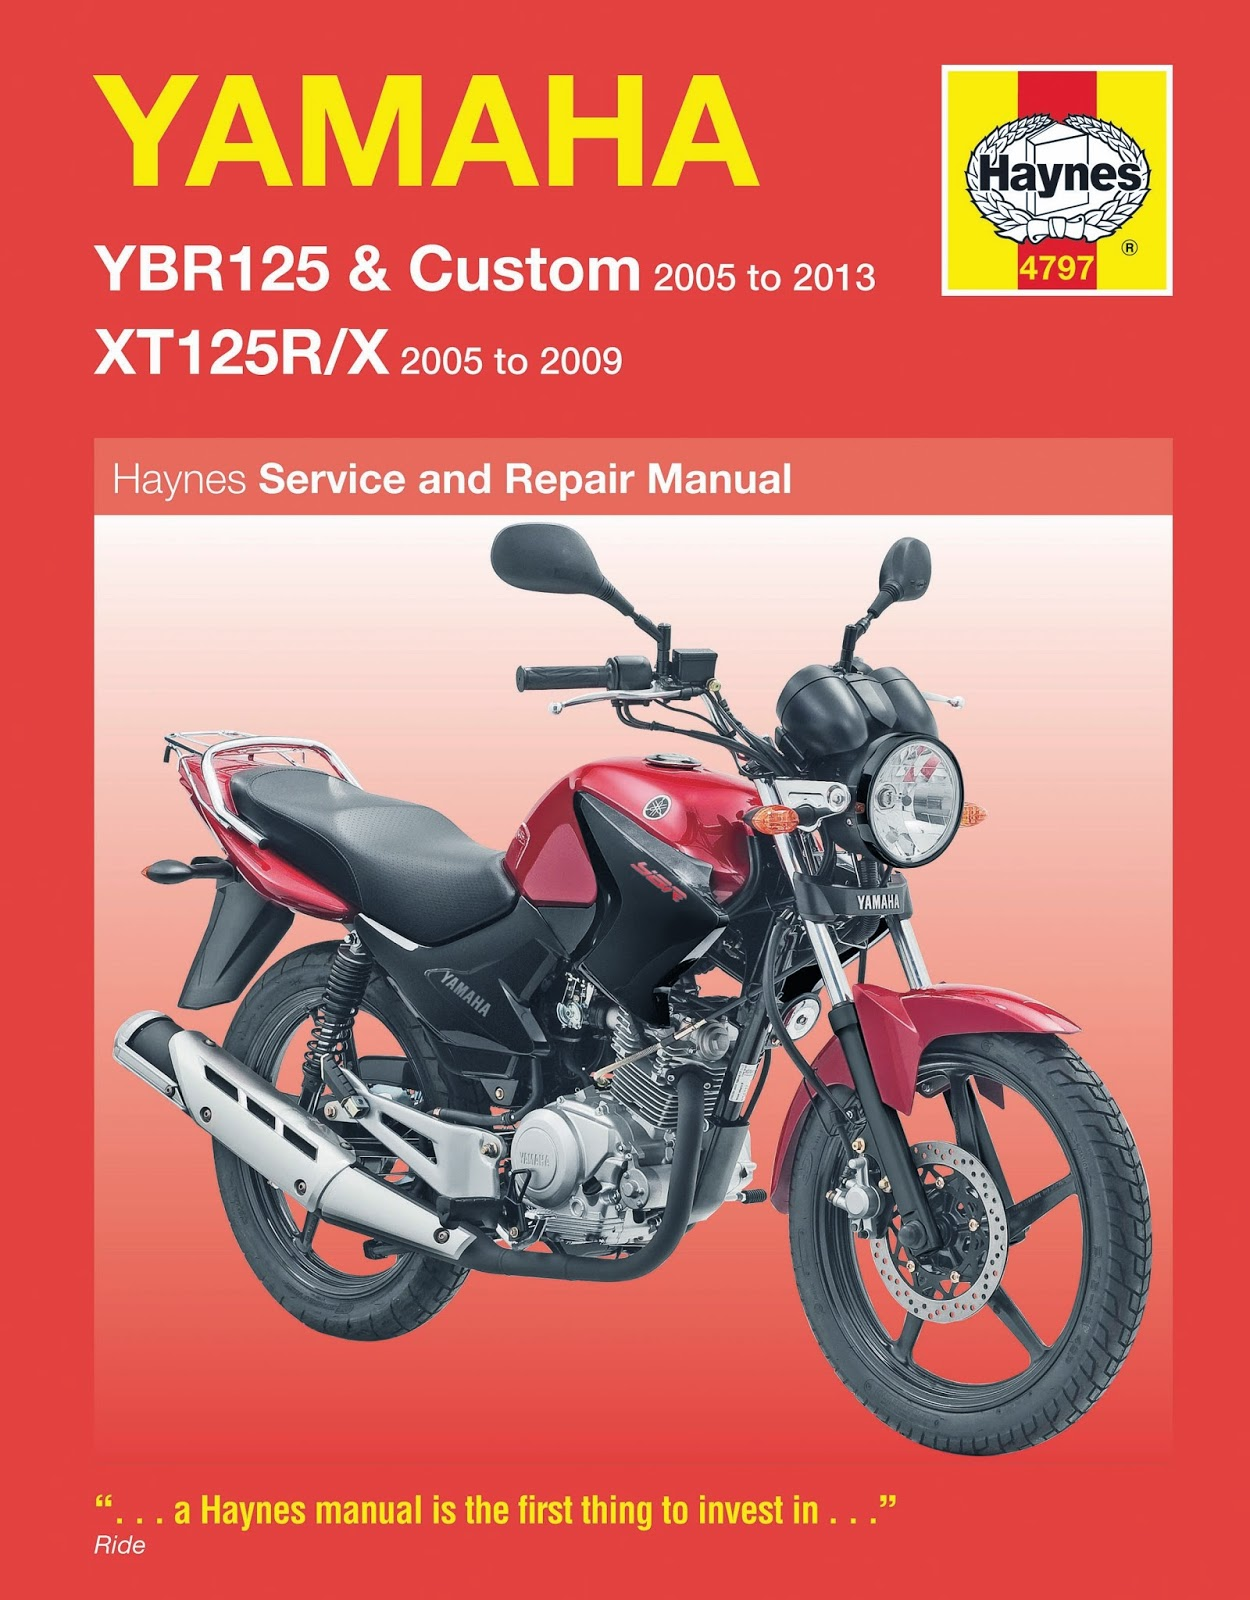 small resolution of yamaha ybr 125 owner blog yamaha ybr 125 electrical system yamaha ybr 125 fuse box location